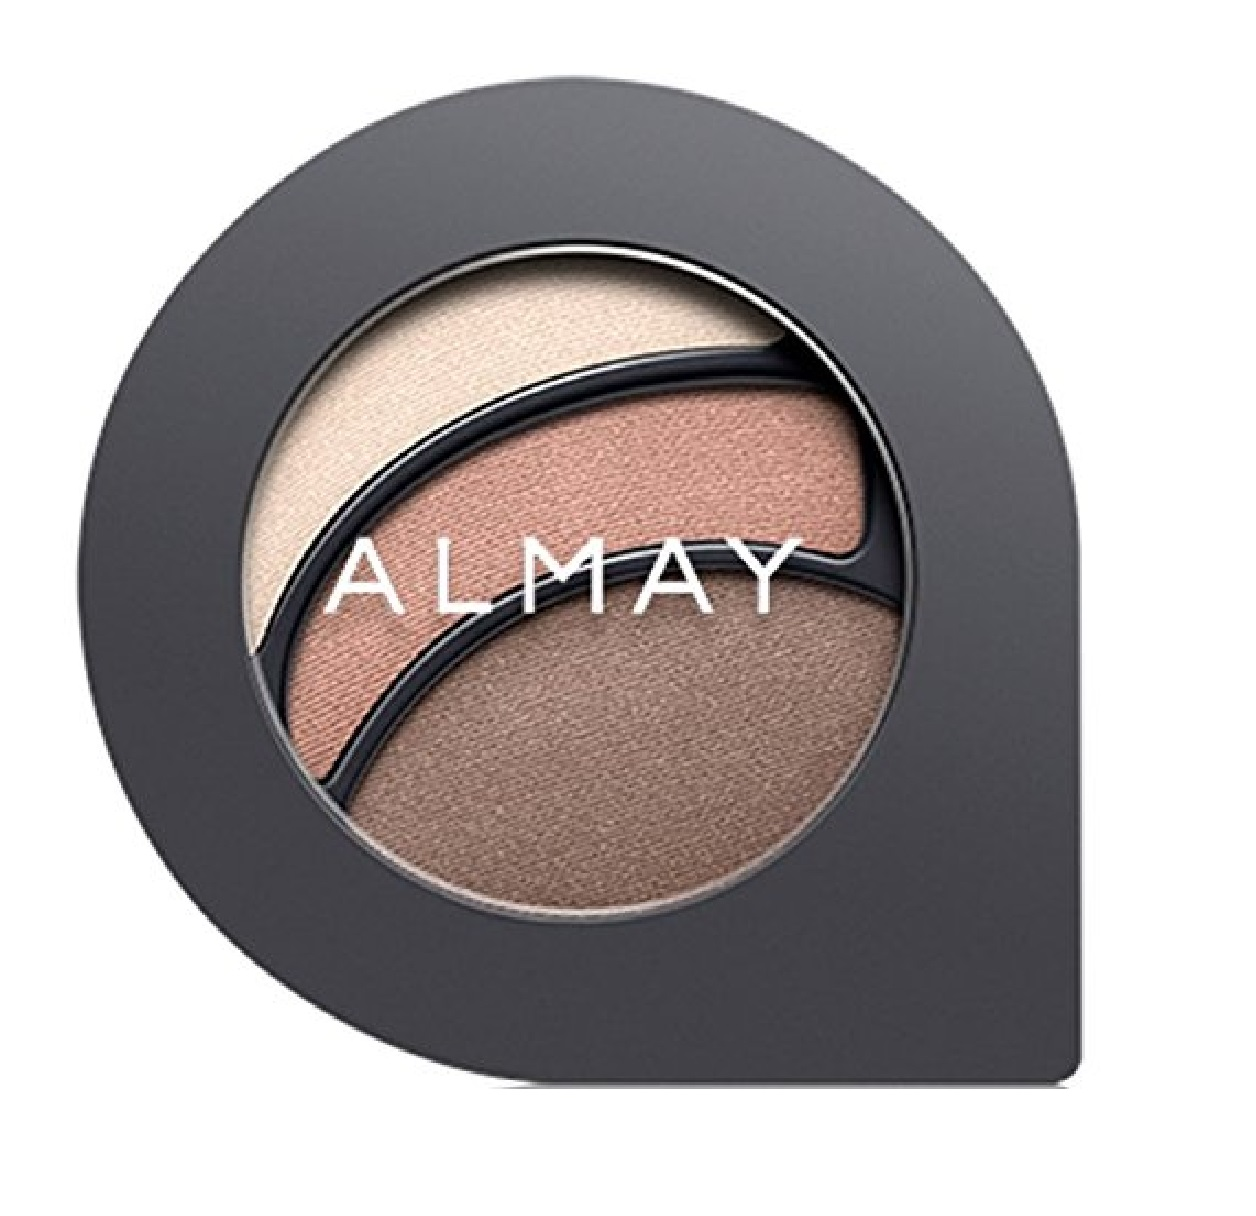 Almay Intense i-Color Evening Smoky for Green Eyes, #160 Greens + FREE Eyebrow Trimmer